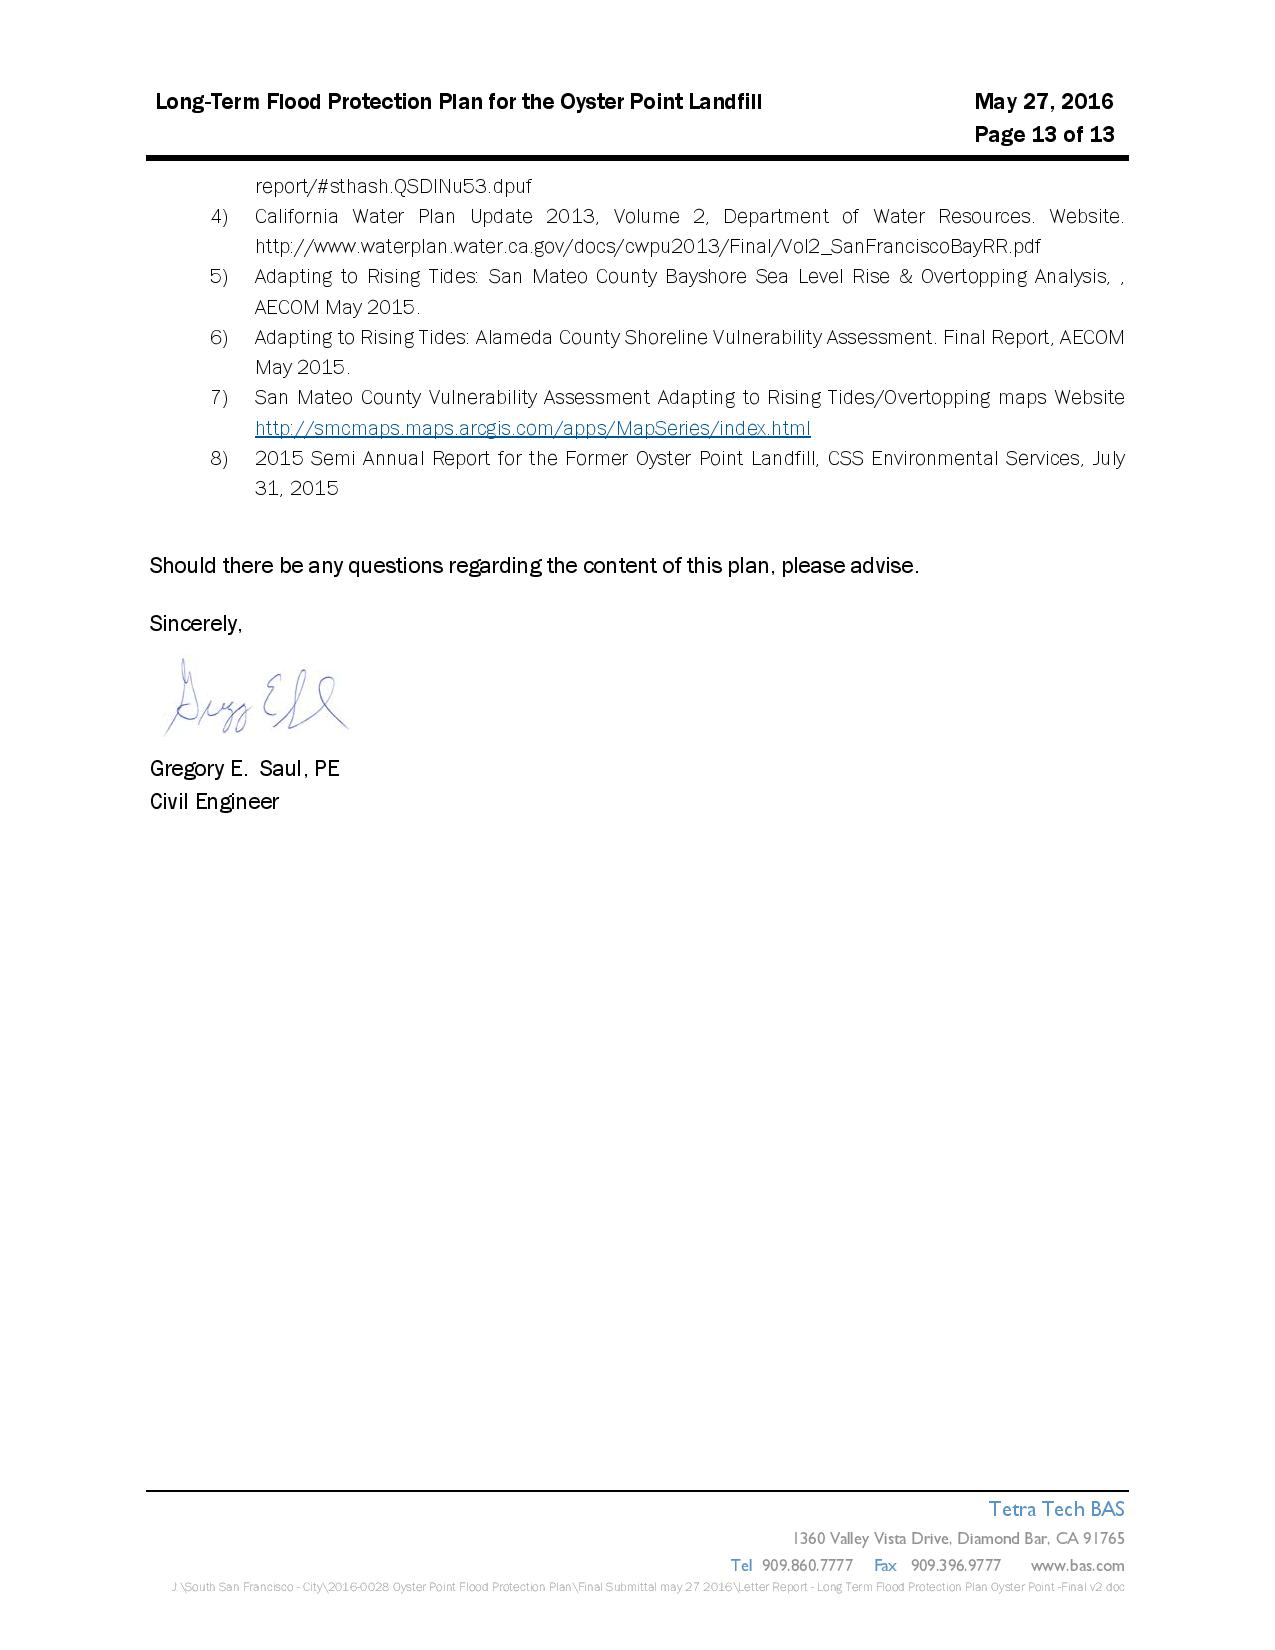 City of SSF Oyster Pt. Landfill Long-Term Flood Protection Letter & Plan-2-page-015